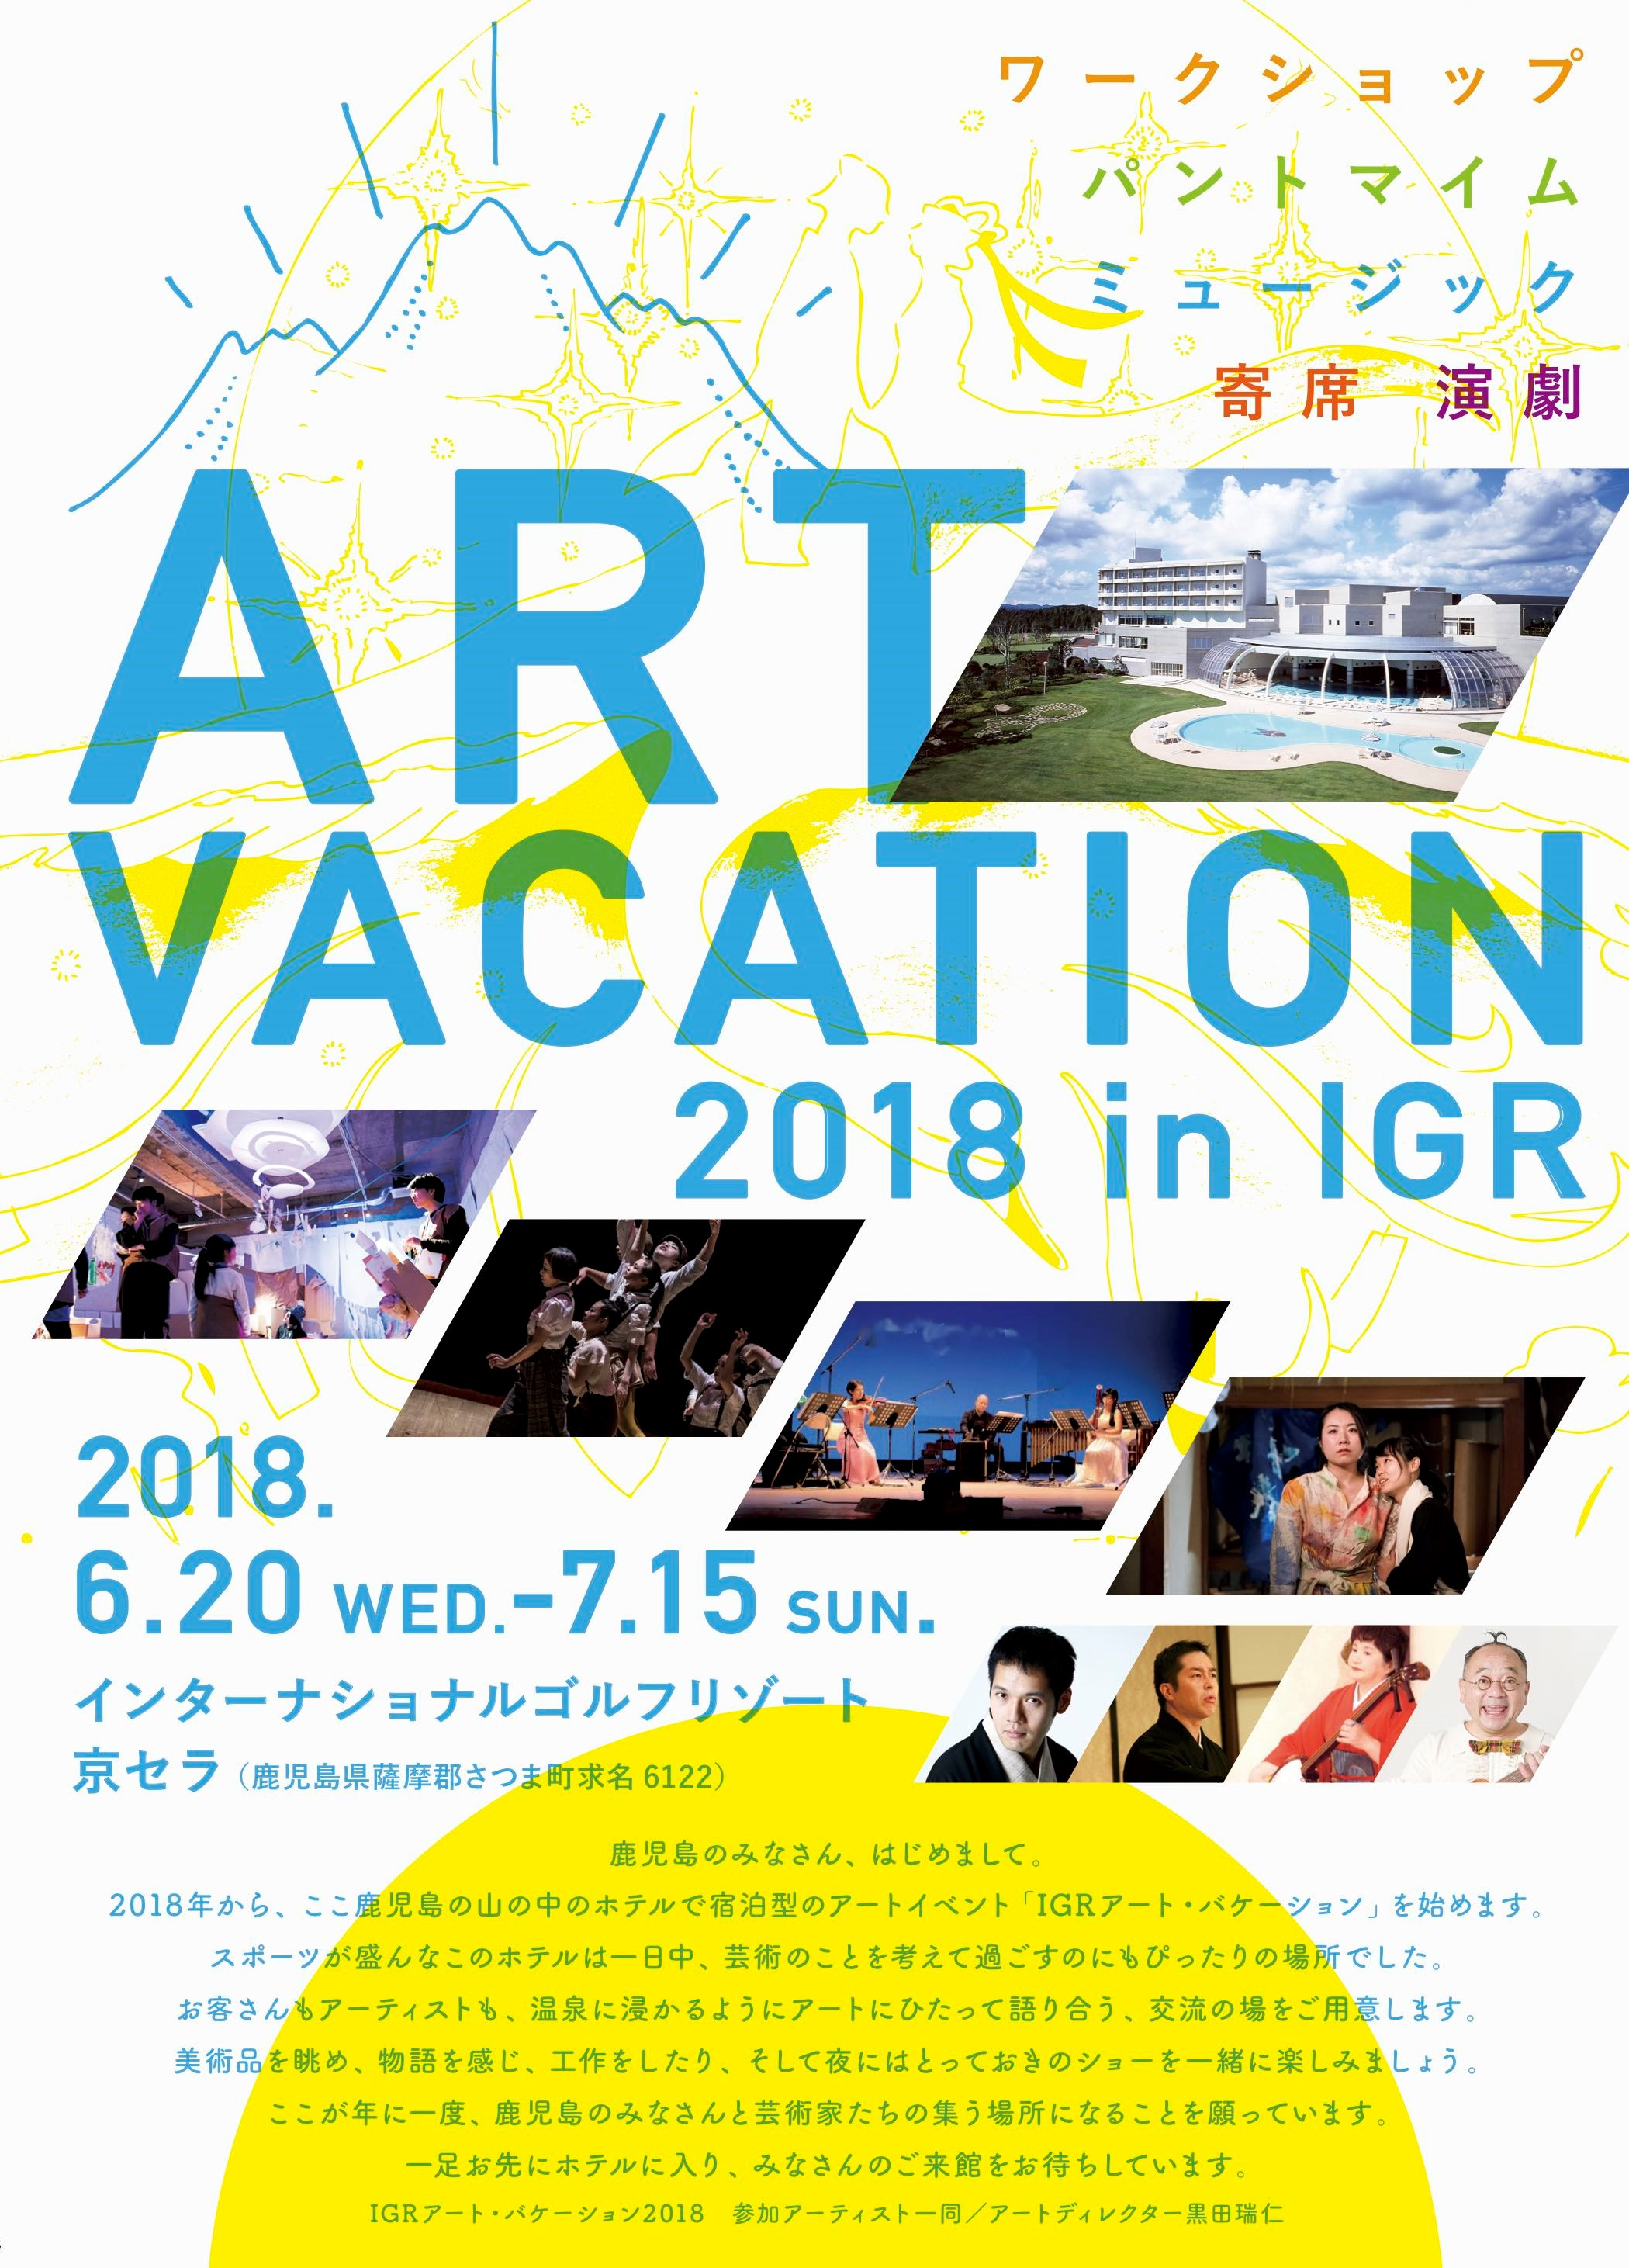 ART VACATION 2018 in IGR 2018.06.20-2018.07.15